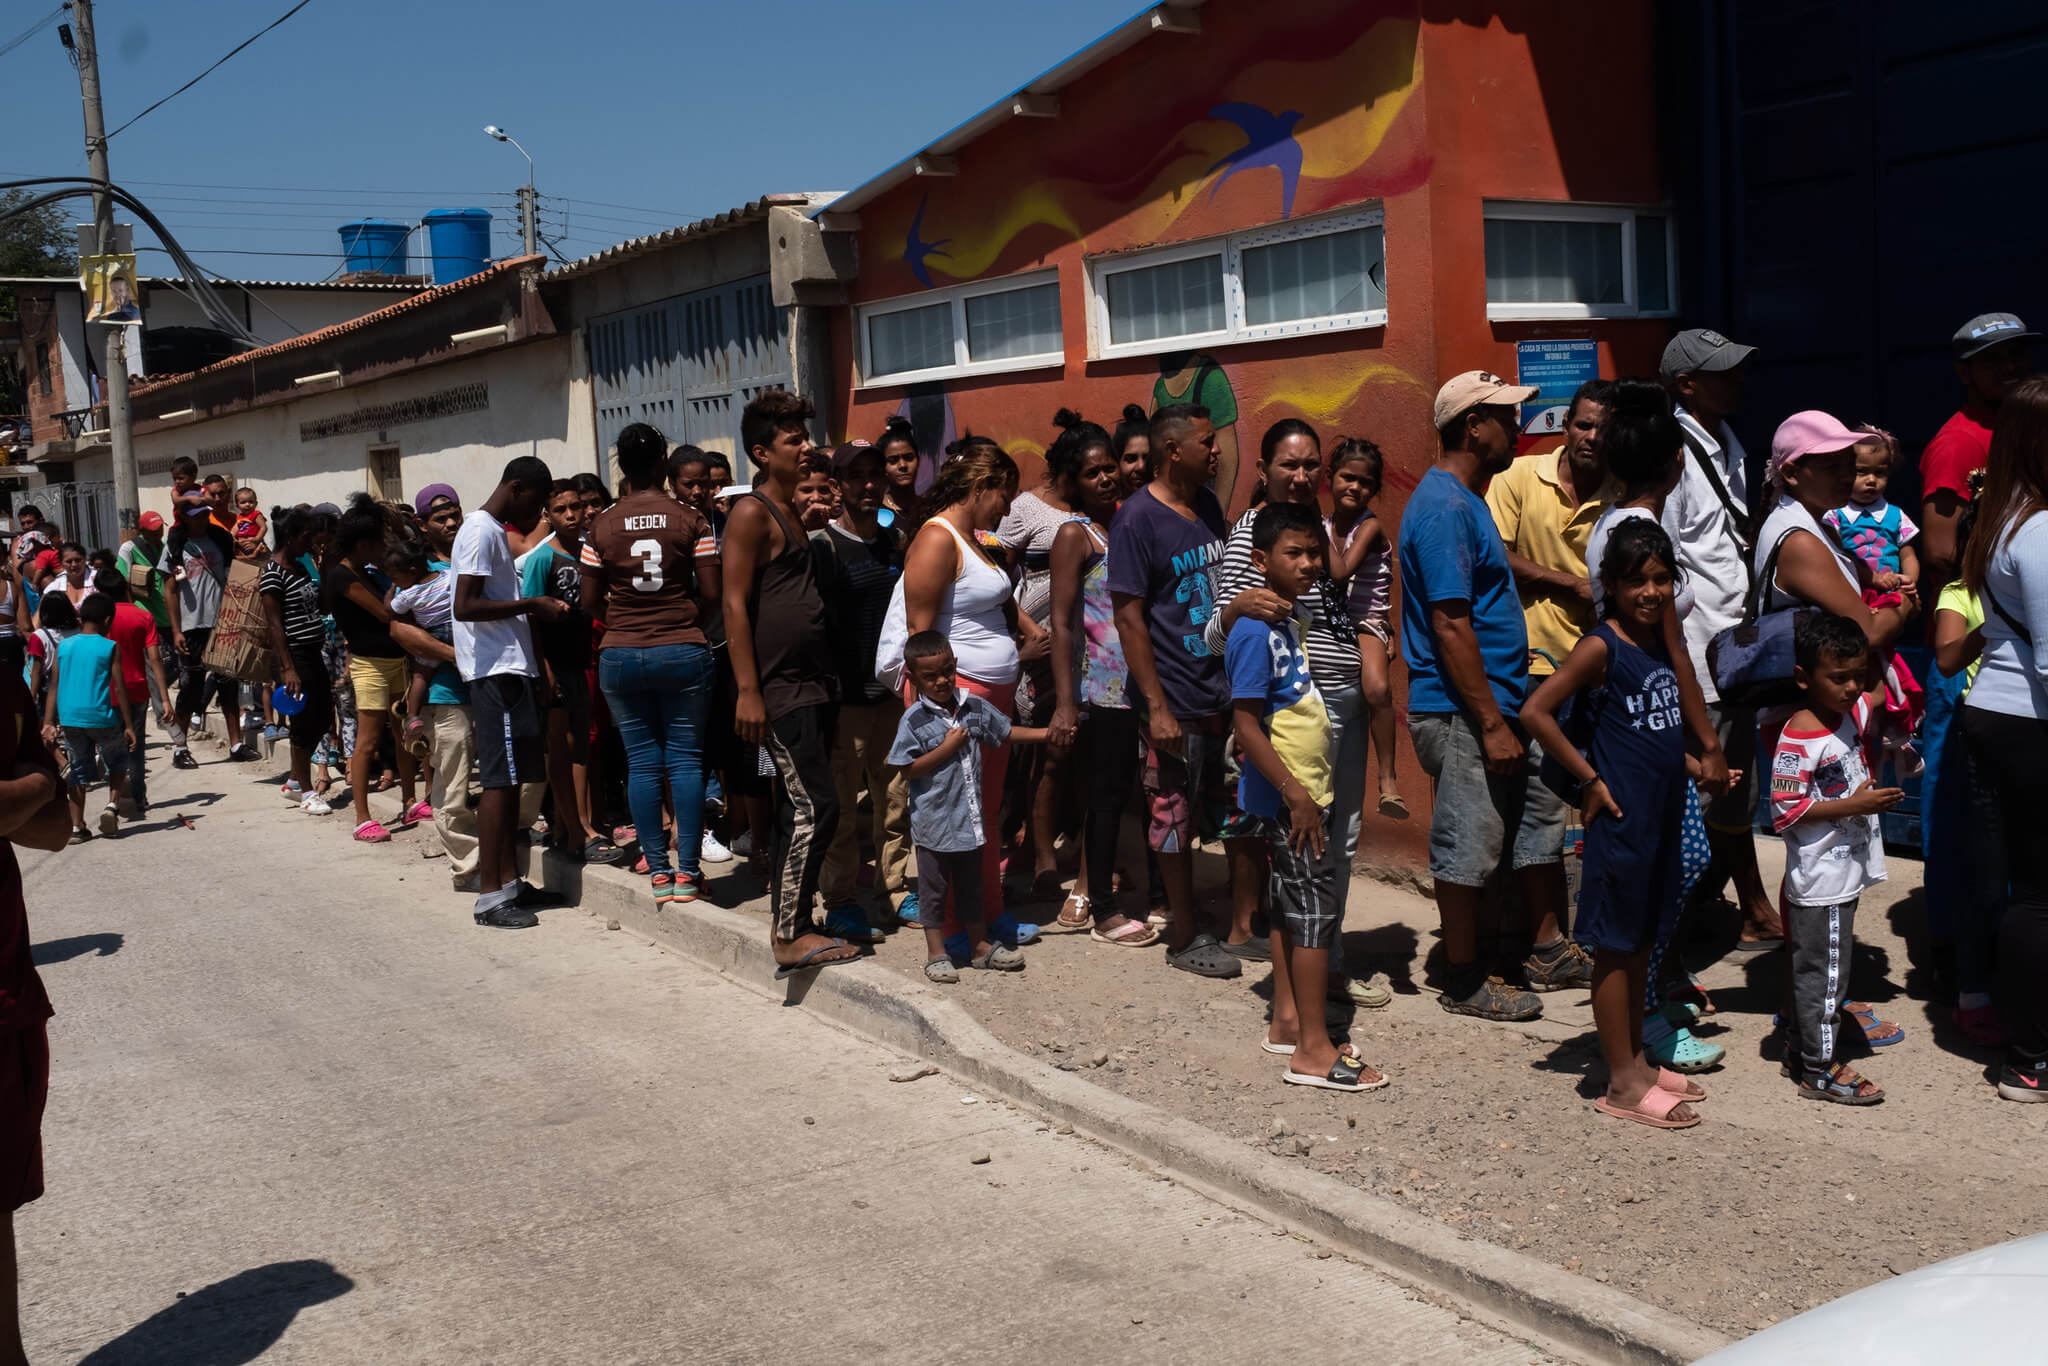 Venezuelan migrants at the Colombian border town Cúcuta in February 2020. Comisión Interamericana de Derechos Humanos